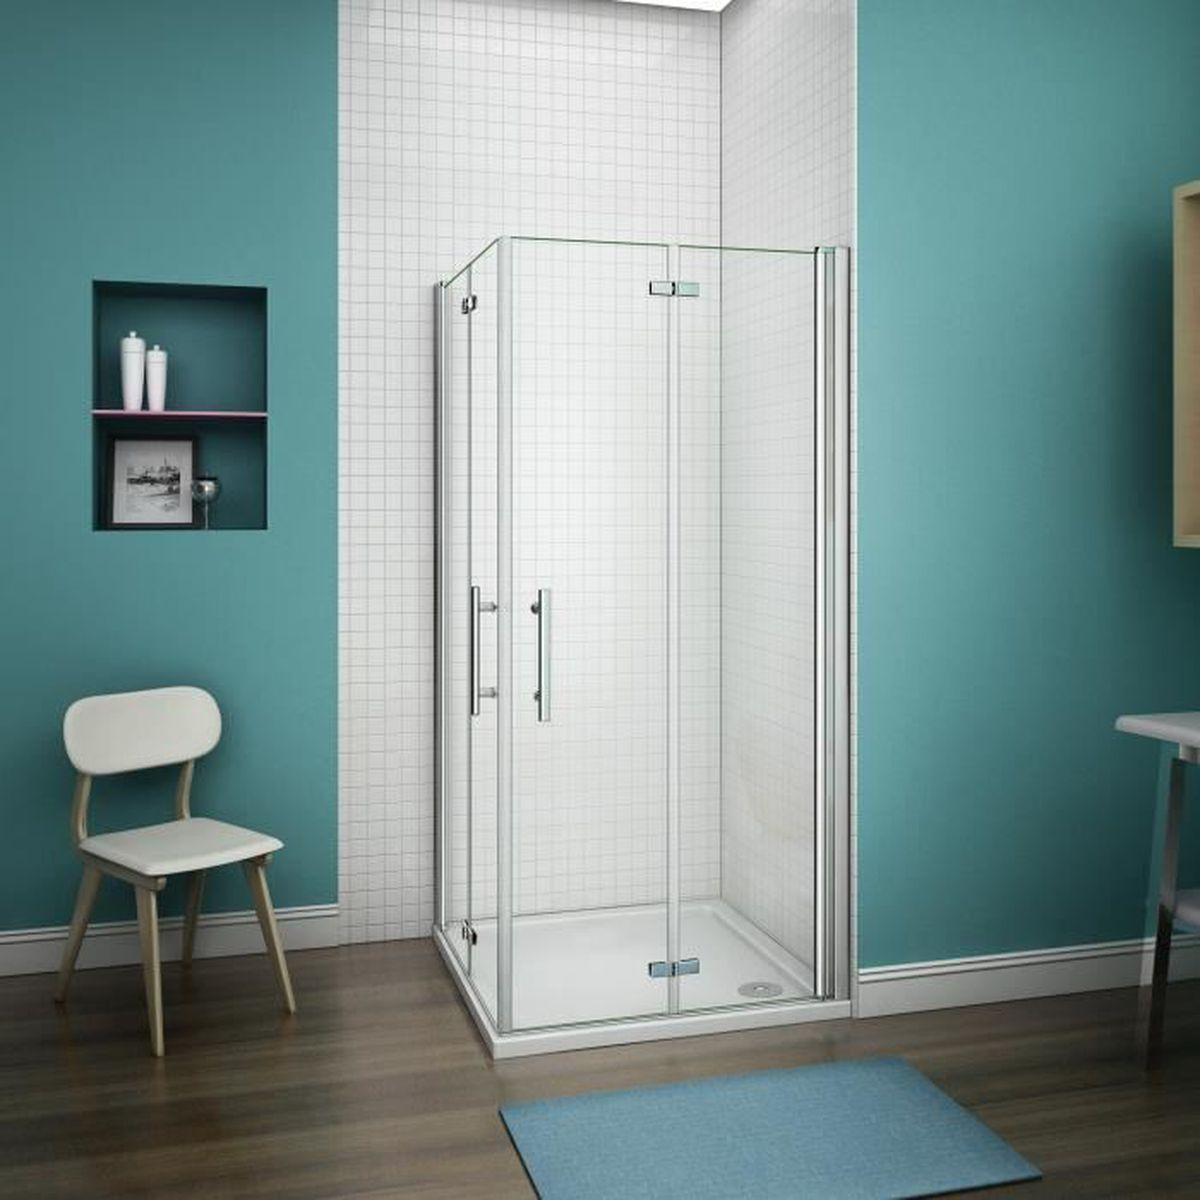 free porte de douche porte de douche pivotante paroi de douche pliante with porte douche accordeon. Black Bedroom Furniture Sets. Home Design Ideas